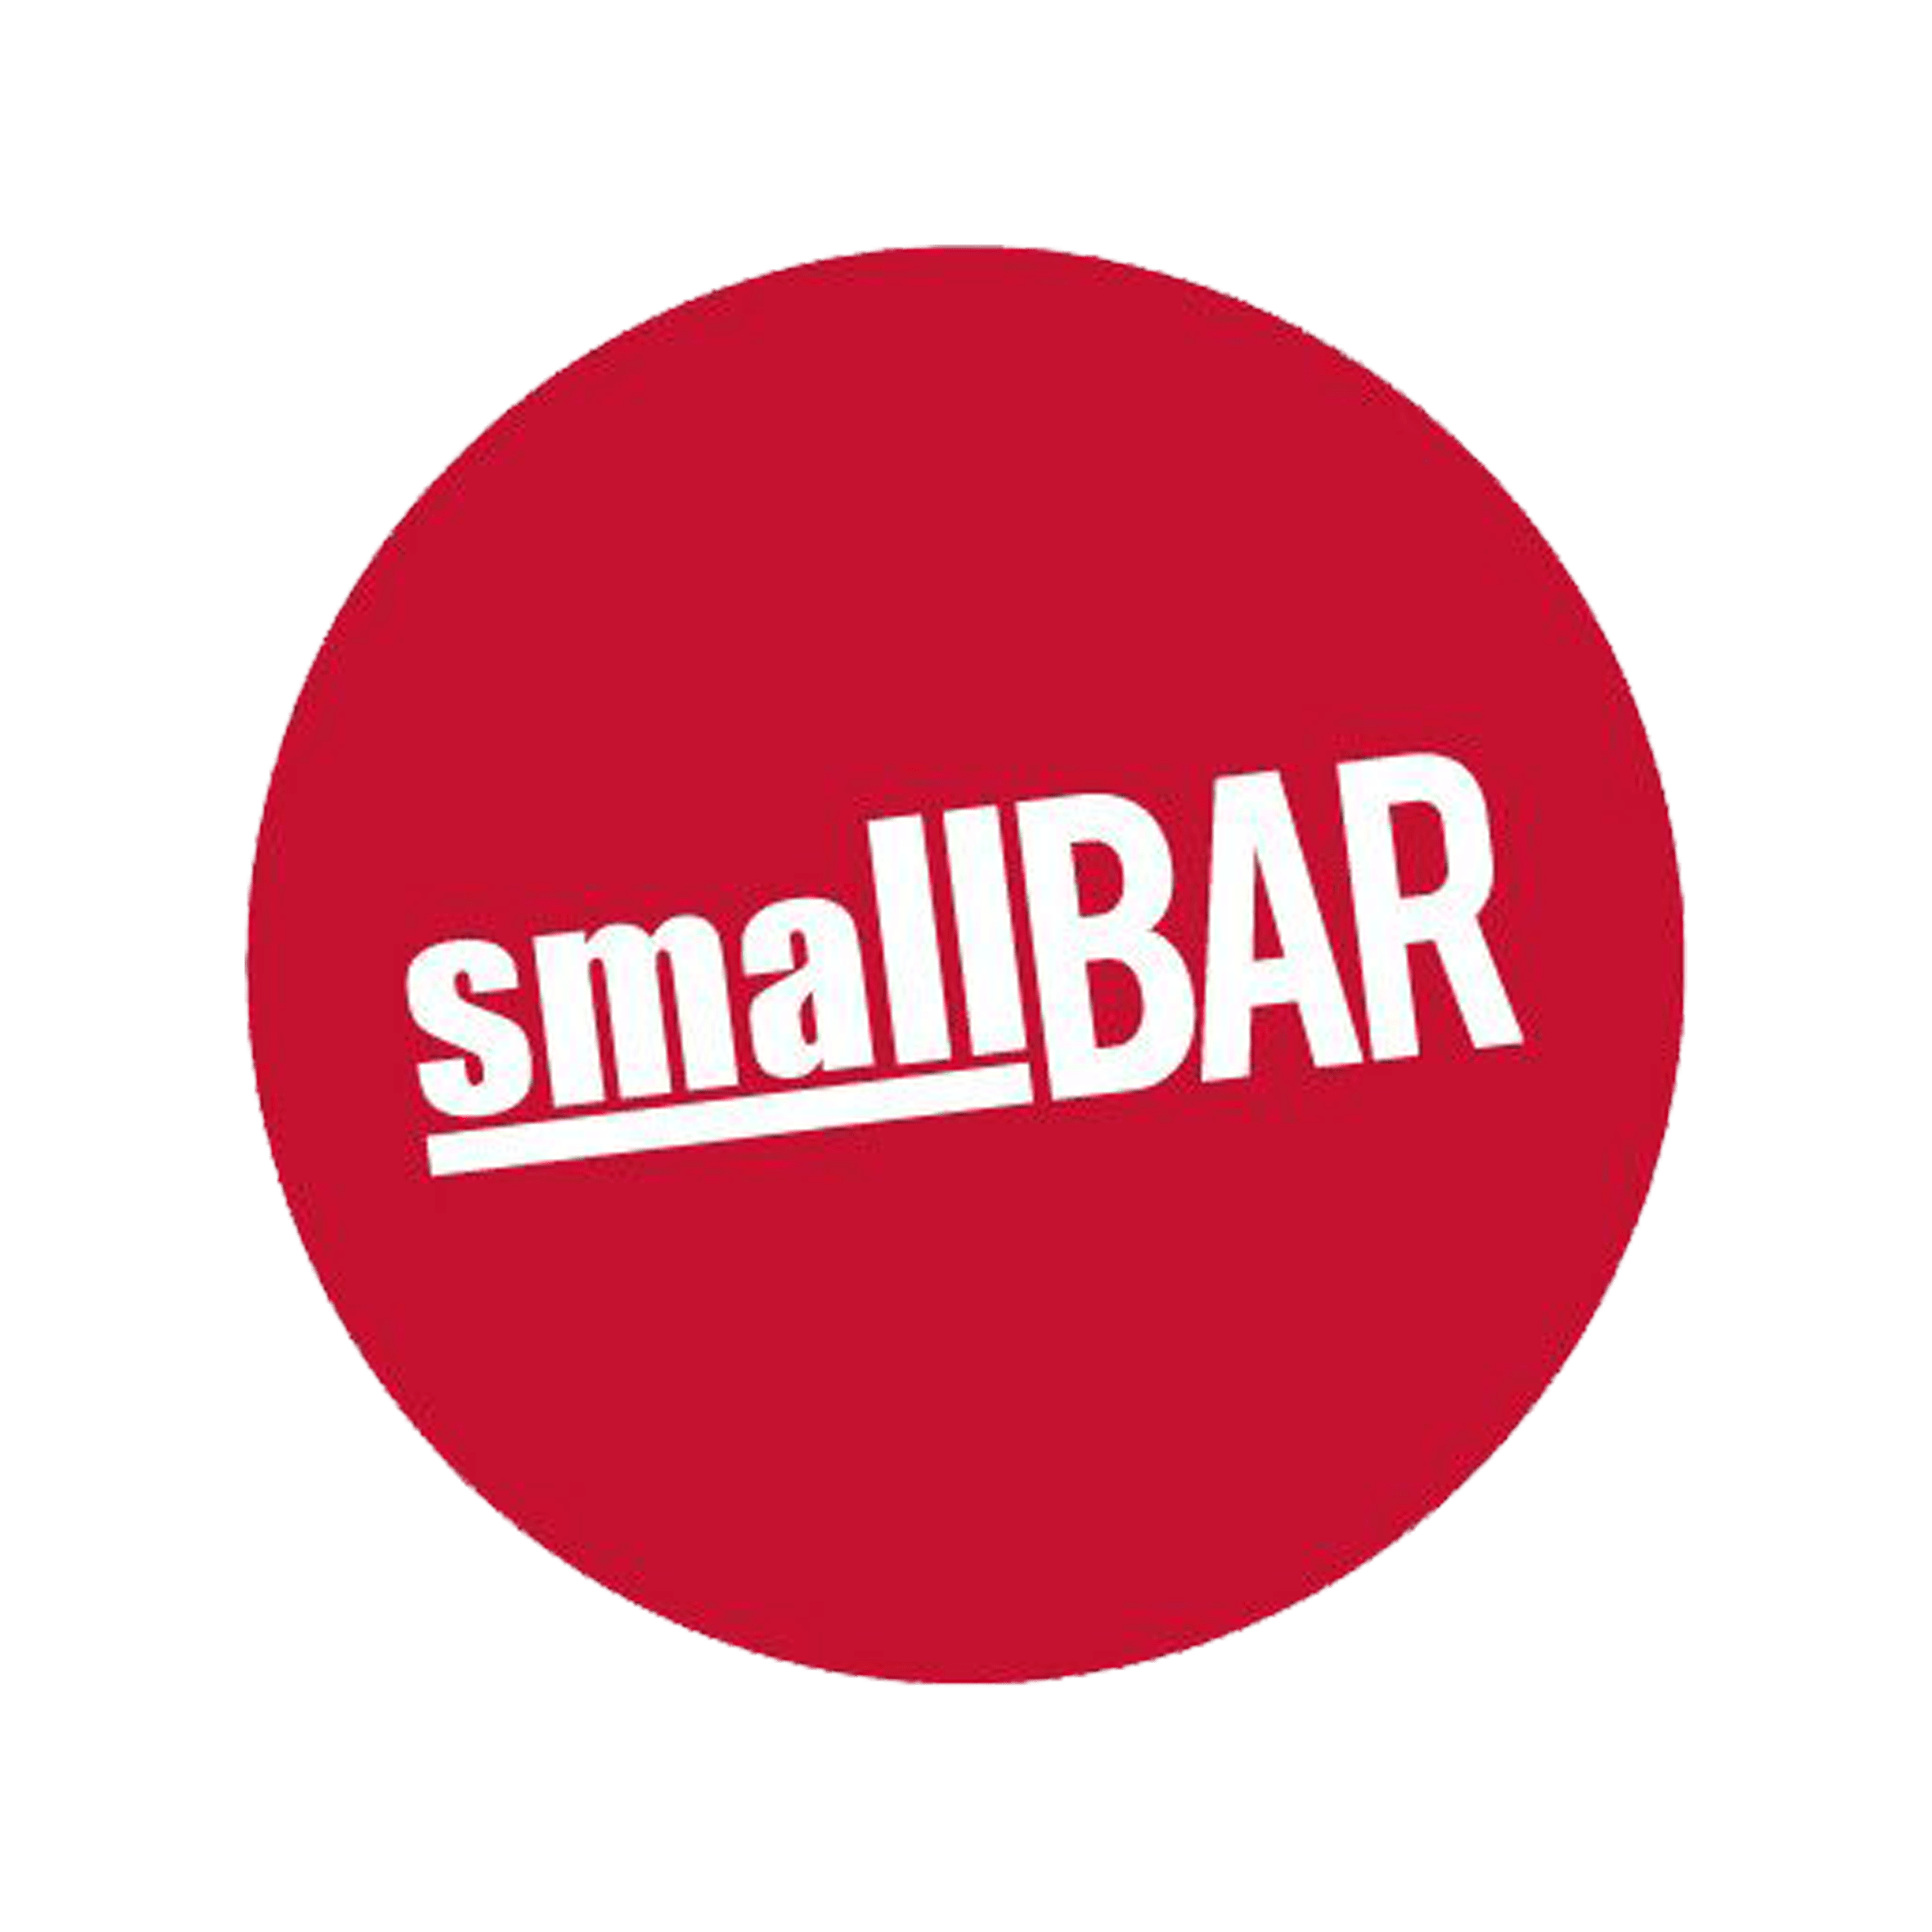 Small bar logo